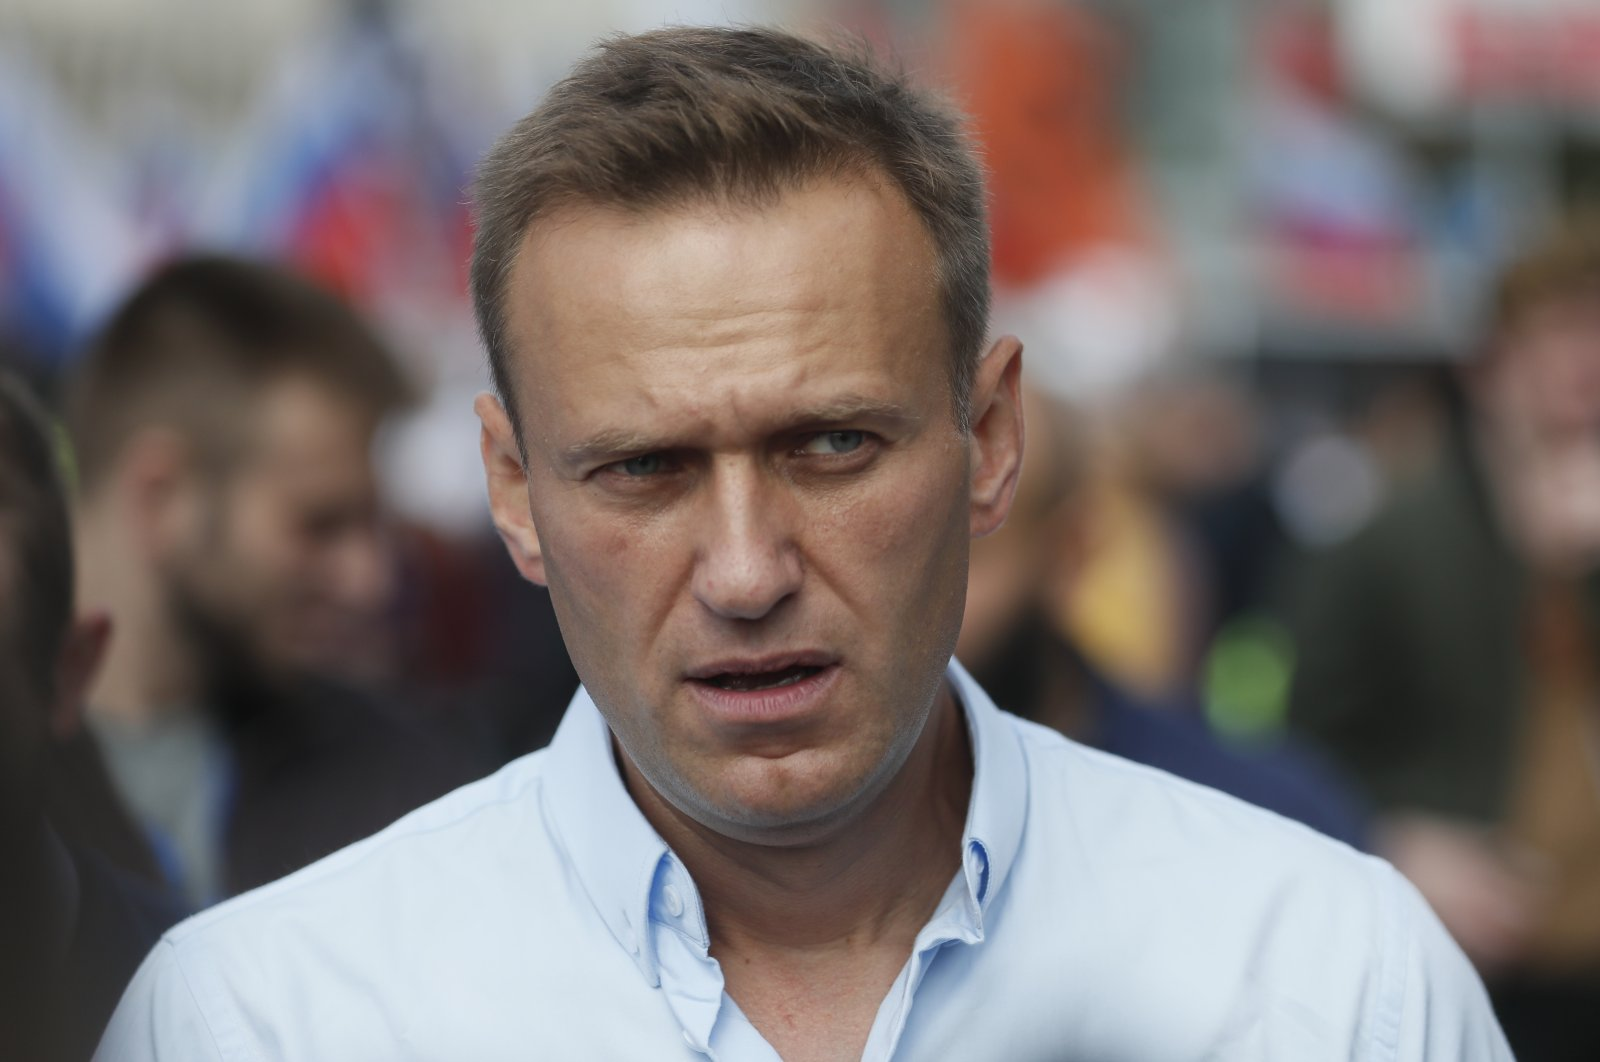 Russian opposition activist Alexei Navalny attends a rally in support of opposition candidates in the Moscow City Duma elections in downtown Moscow, Russia, July 20, 2019. (EPA-EFE Photo)